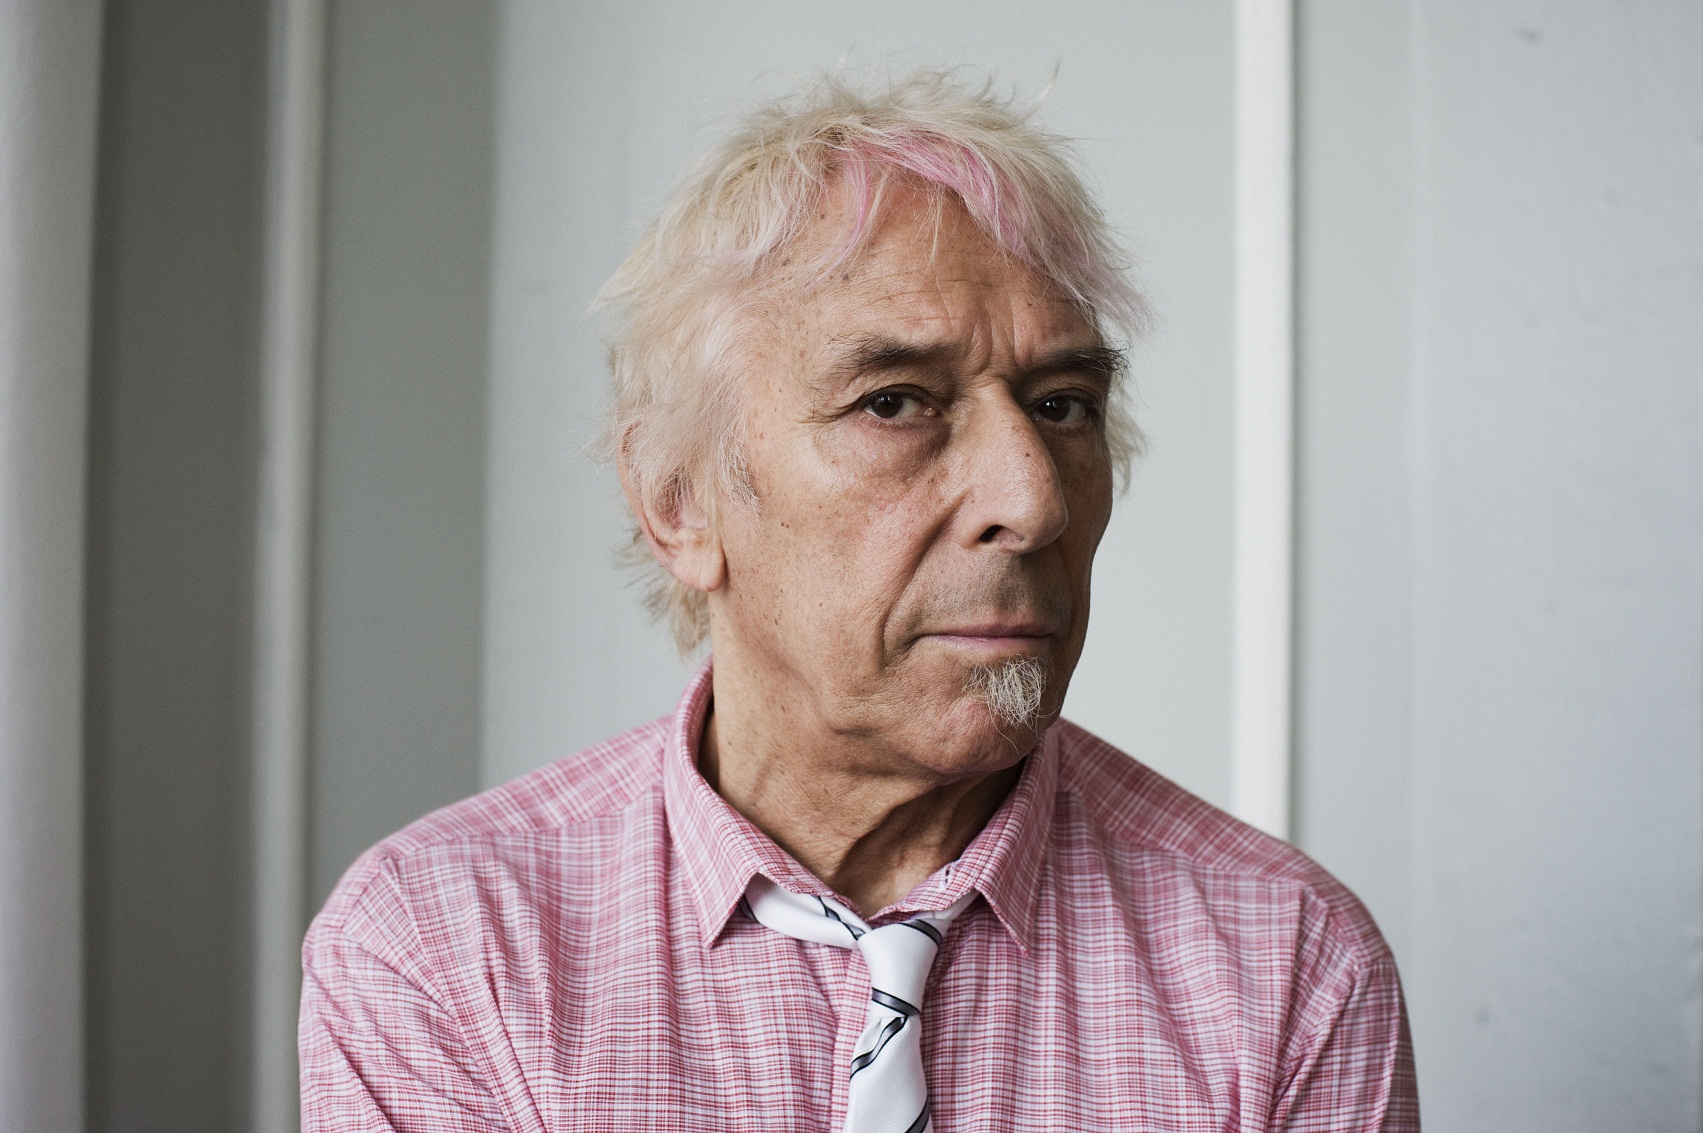 john_cale_4__hi_res_-_photo_credit_shawn_brackbill